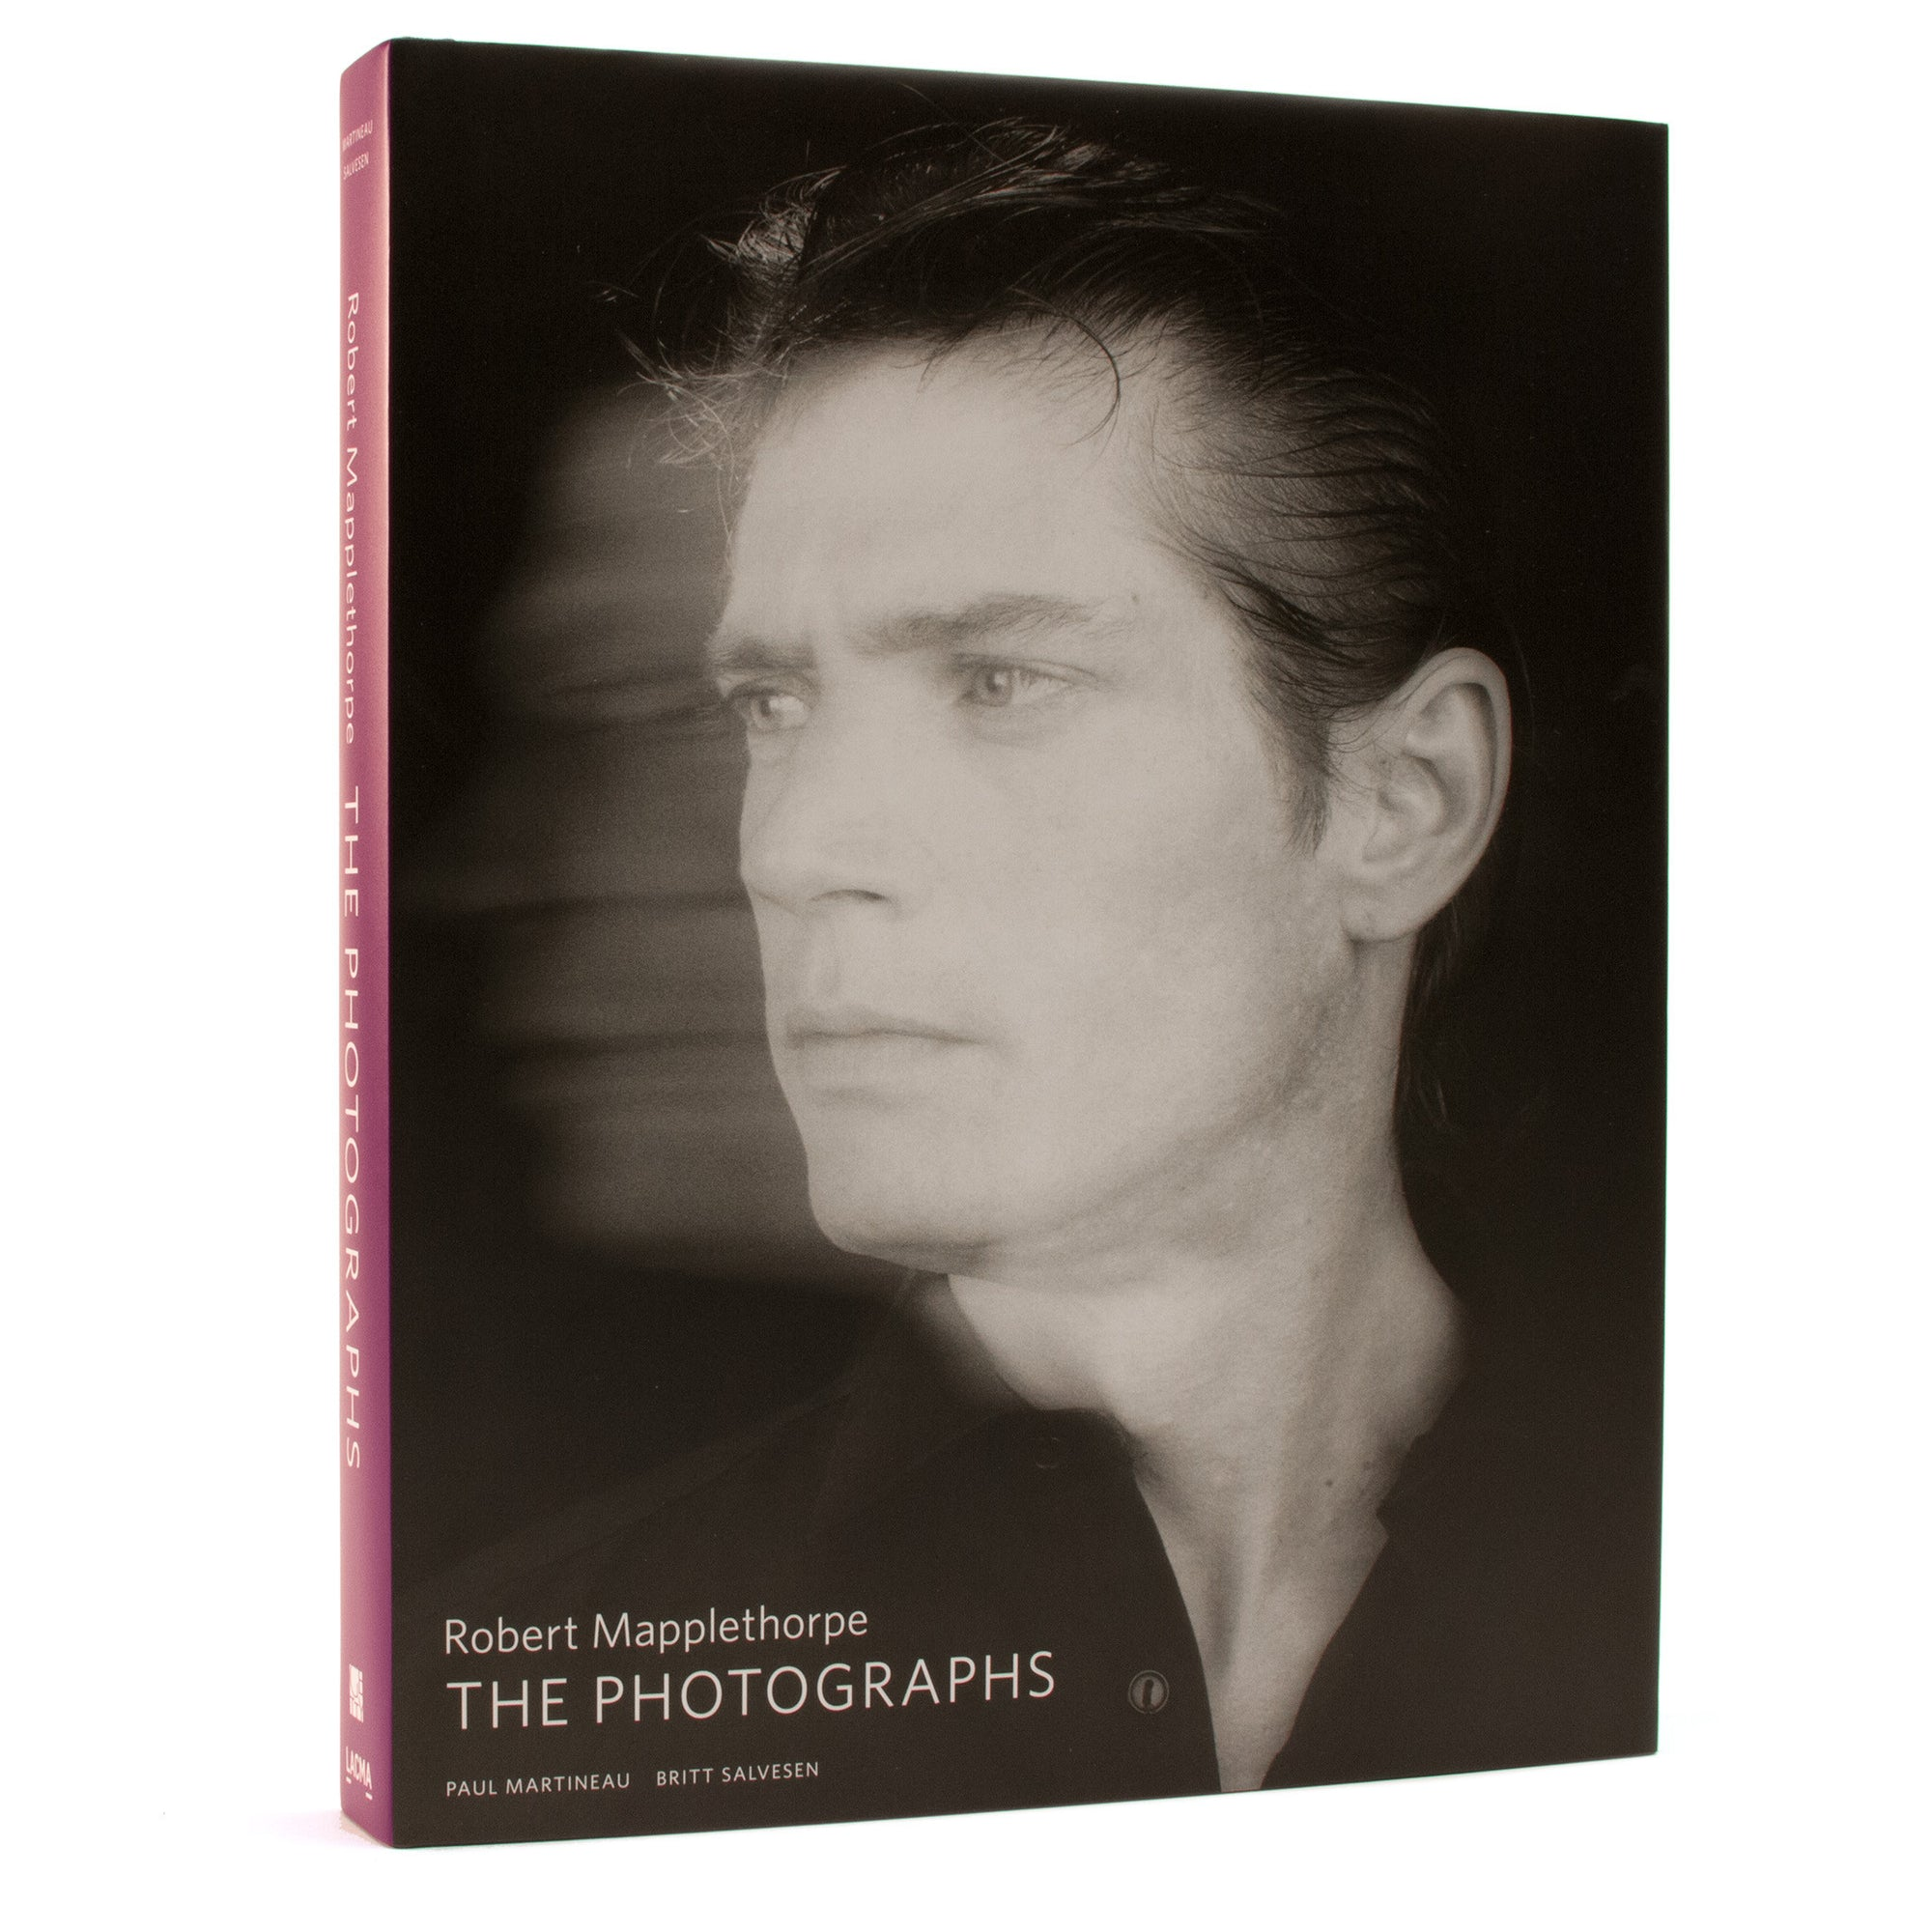 Robert Mapplethorpe: The Photographs | Getty Store